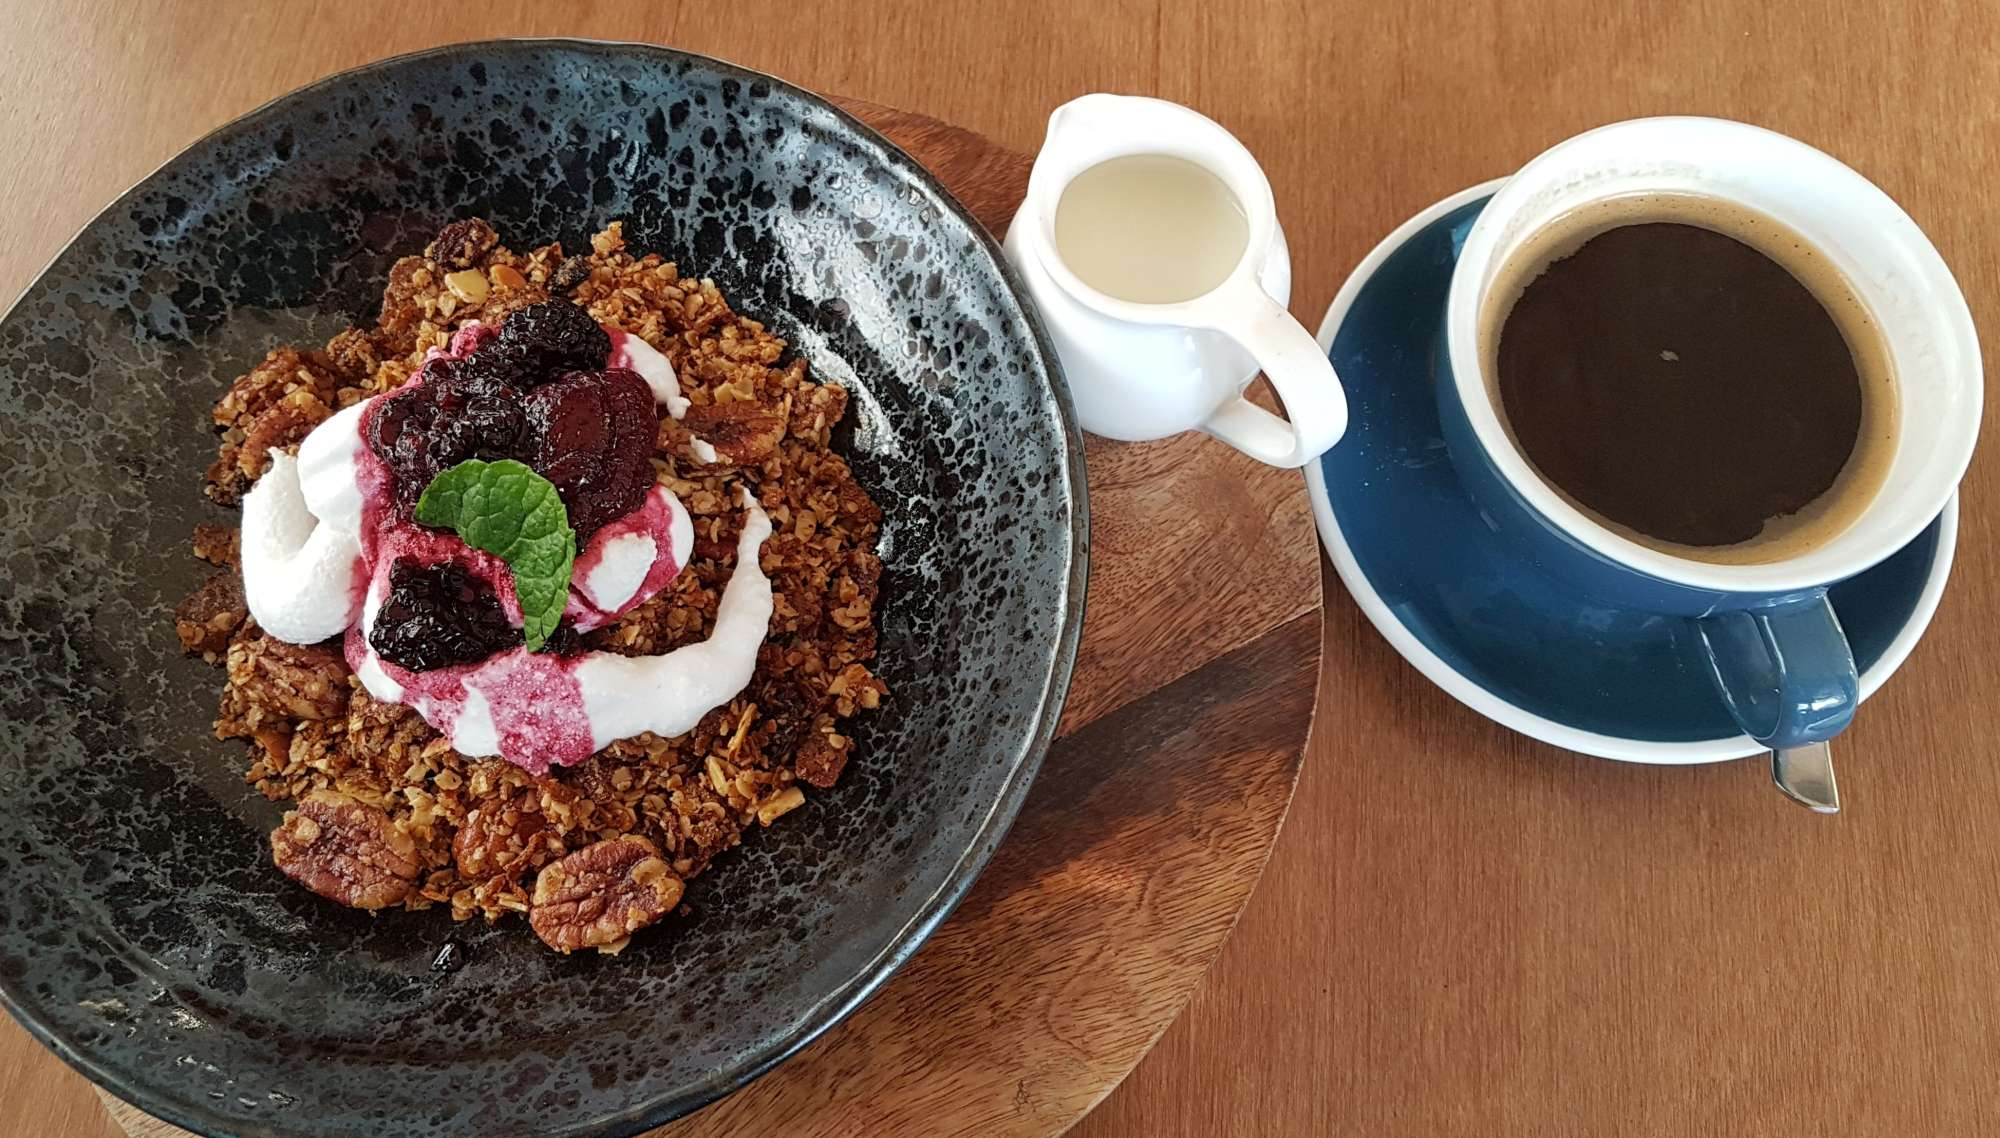 Eat Restaurant granola and coffee